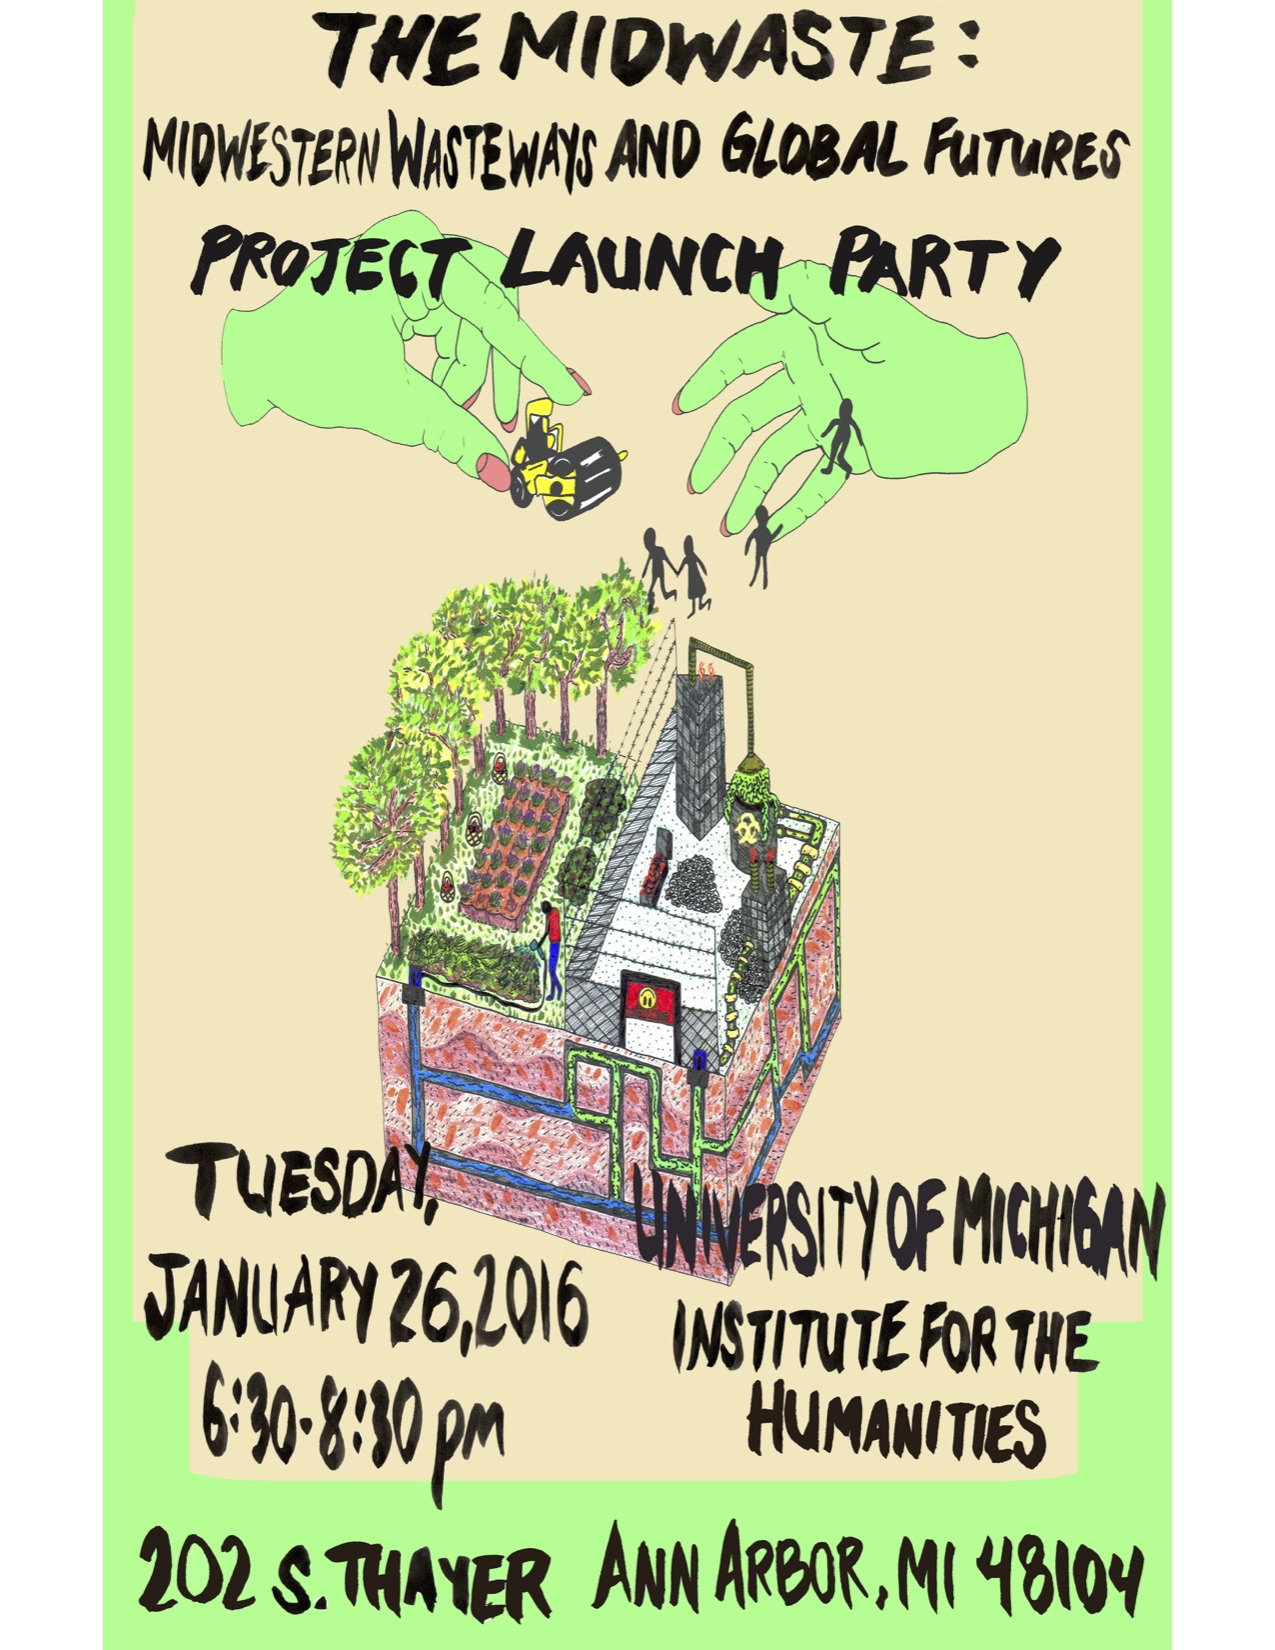 THE MIDWASTE: Midwestern Wasteways and Global Futures Project Launch Party (Jan 26)